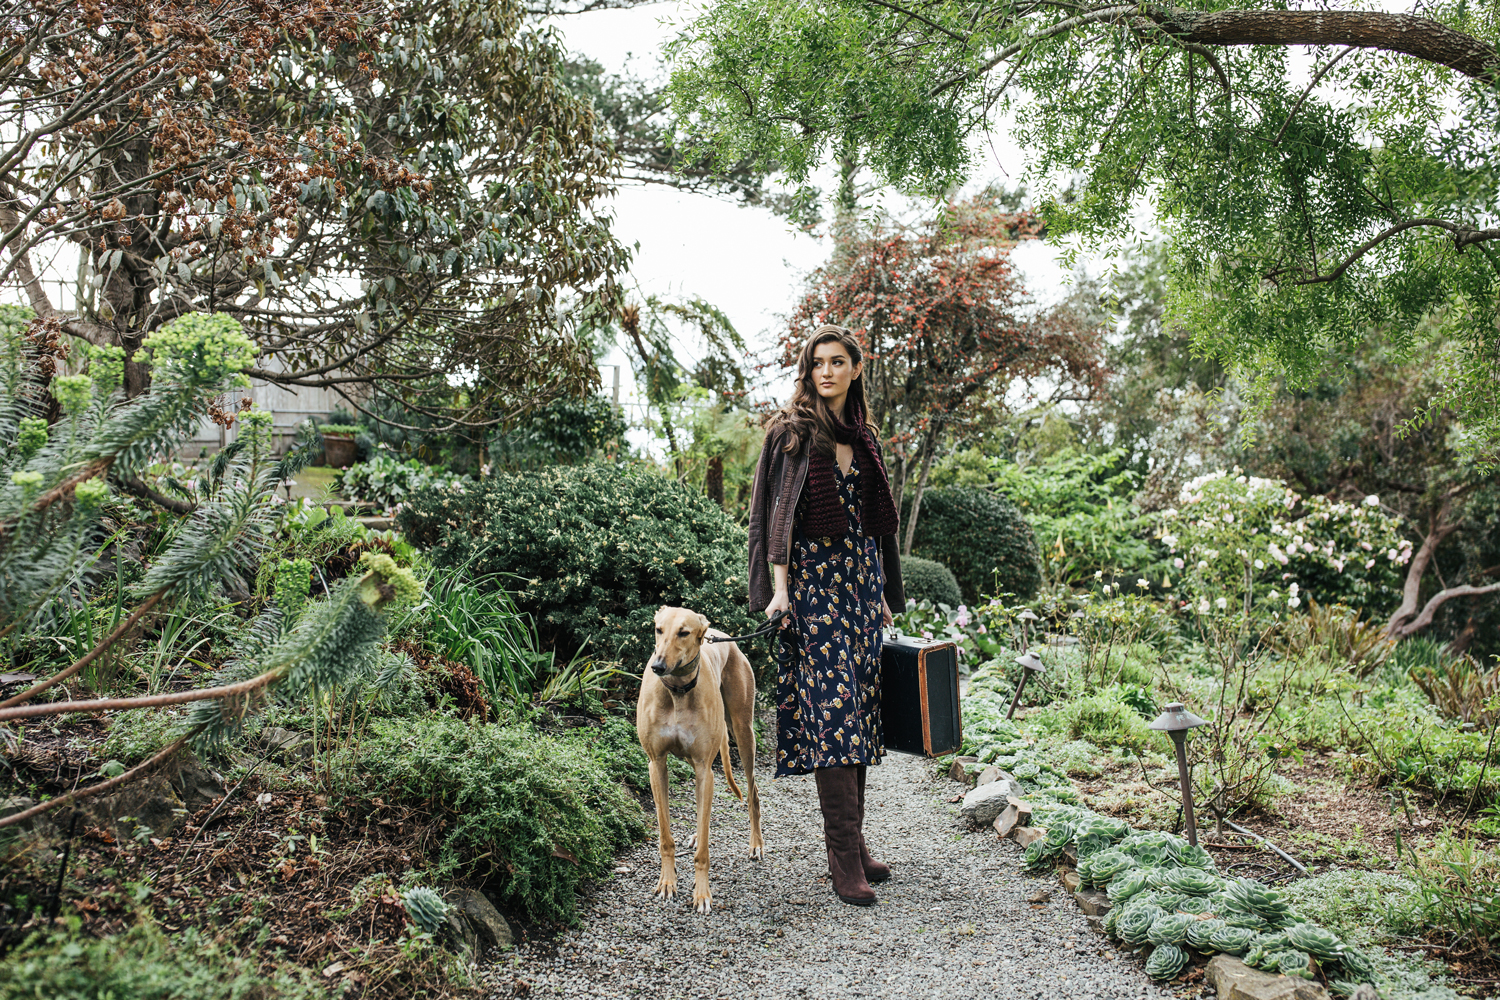 hillary jeanne photography - teryn grey, greyhound dogs, fashion blogger, garden